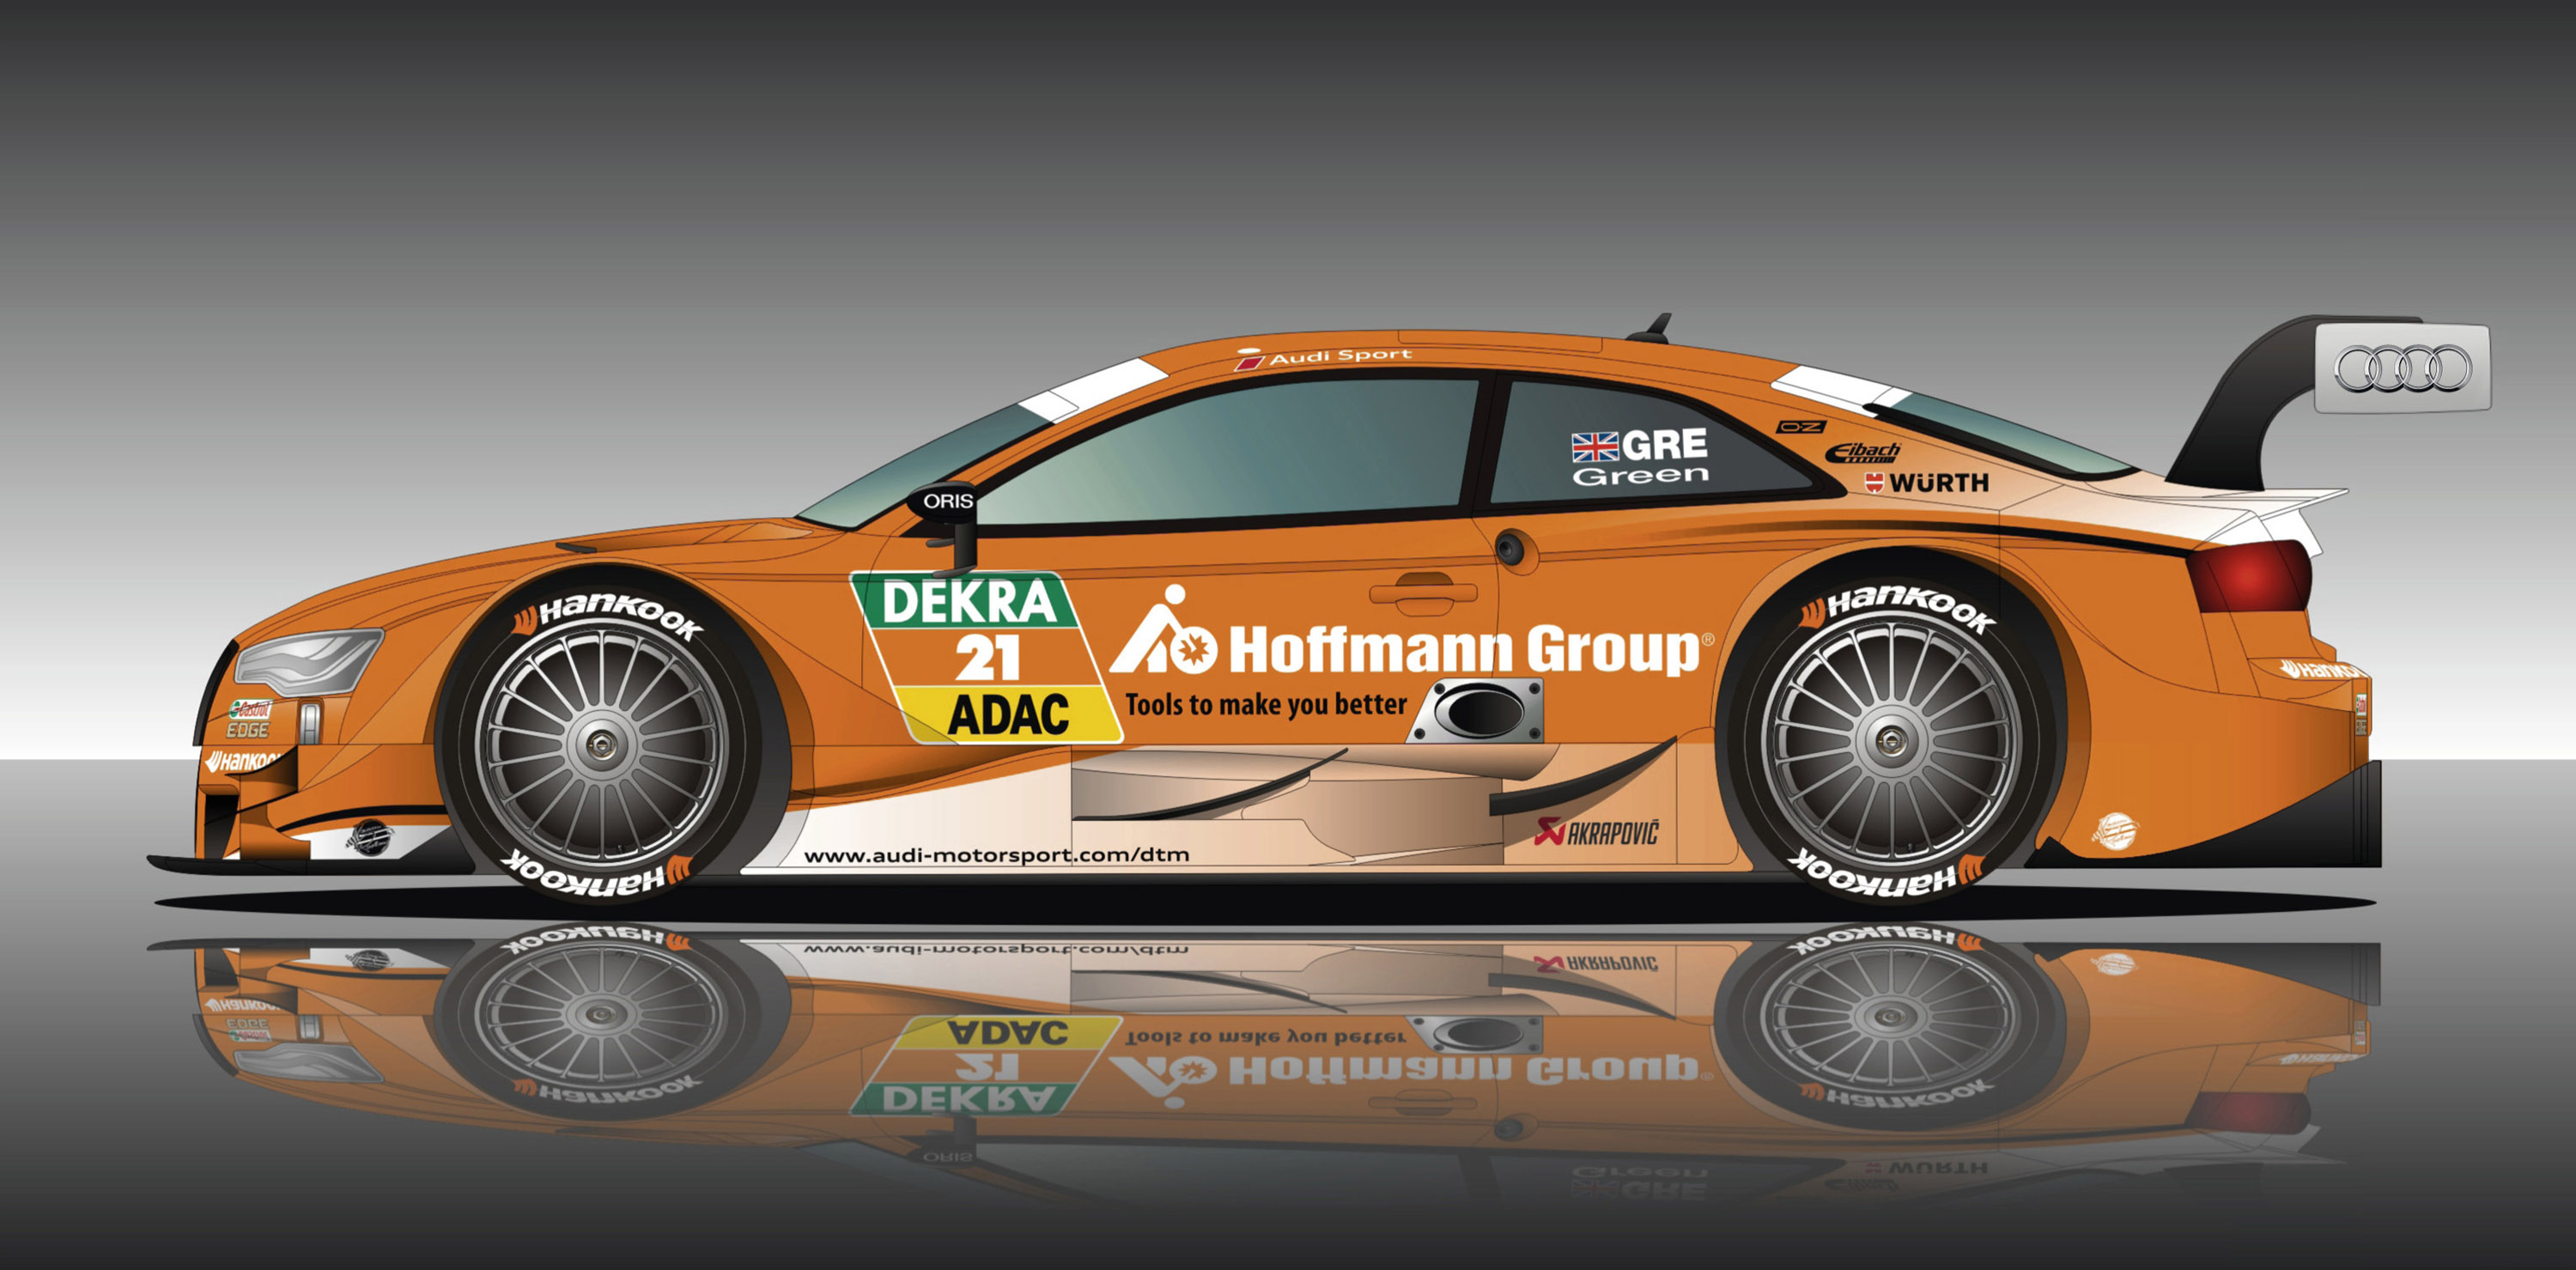 hoffmann group partners with audi for new rs5 dtm livery. Black Bedroom Furniture Sets. Home Design Ideas